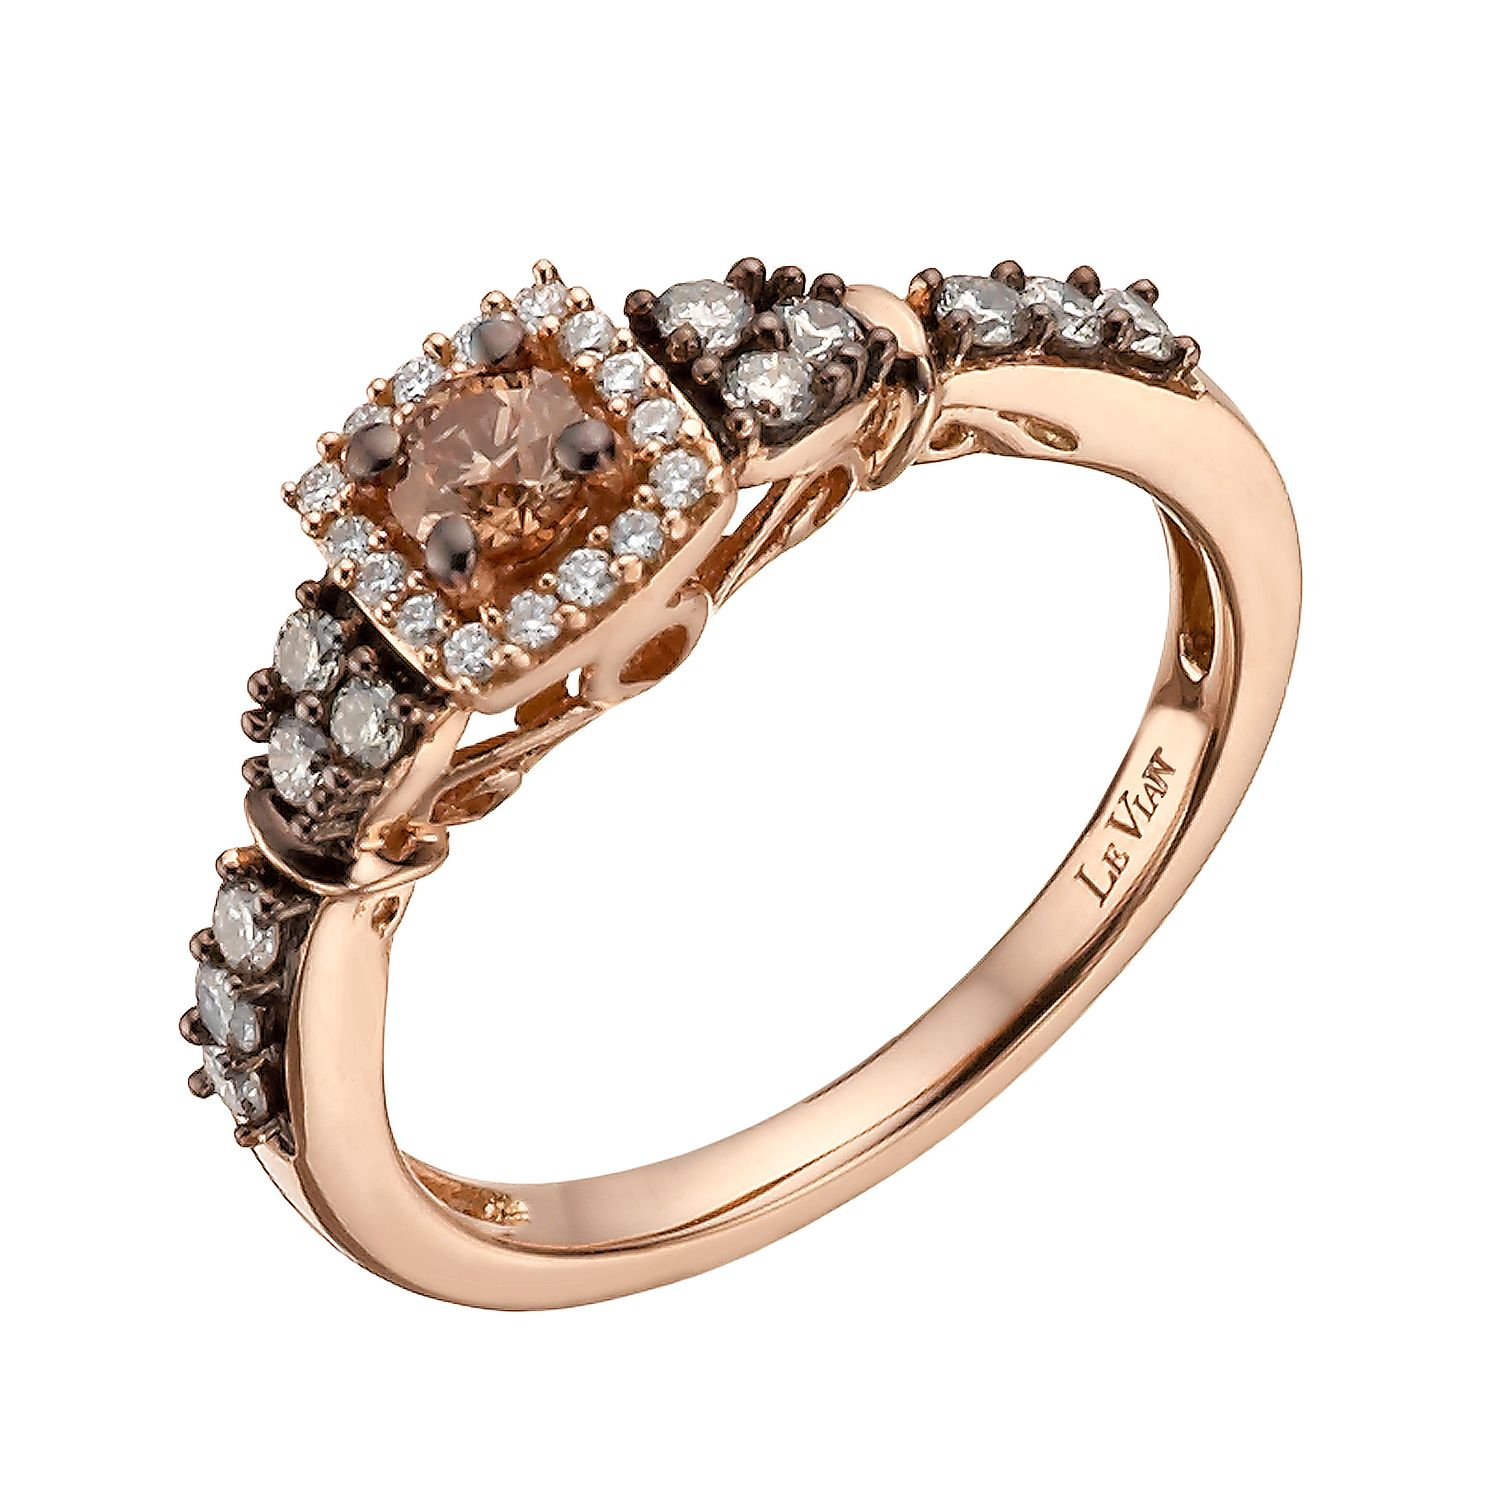 bands love colored morganite engagement rings stewart diamonds diamond peach vert we chocolate weddings martha levian